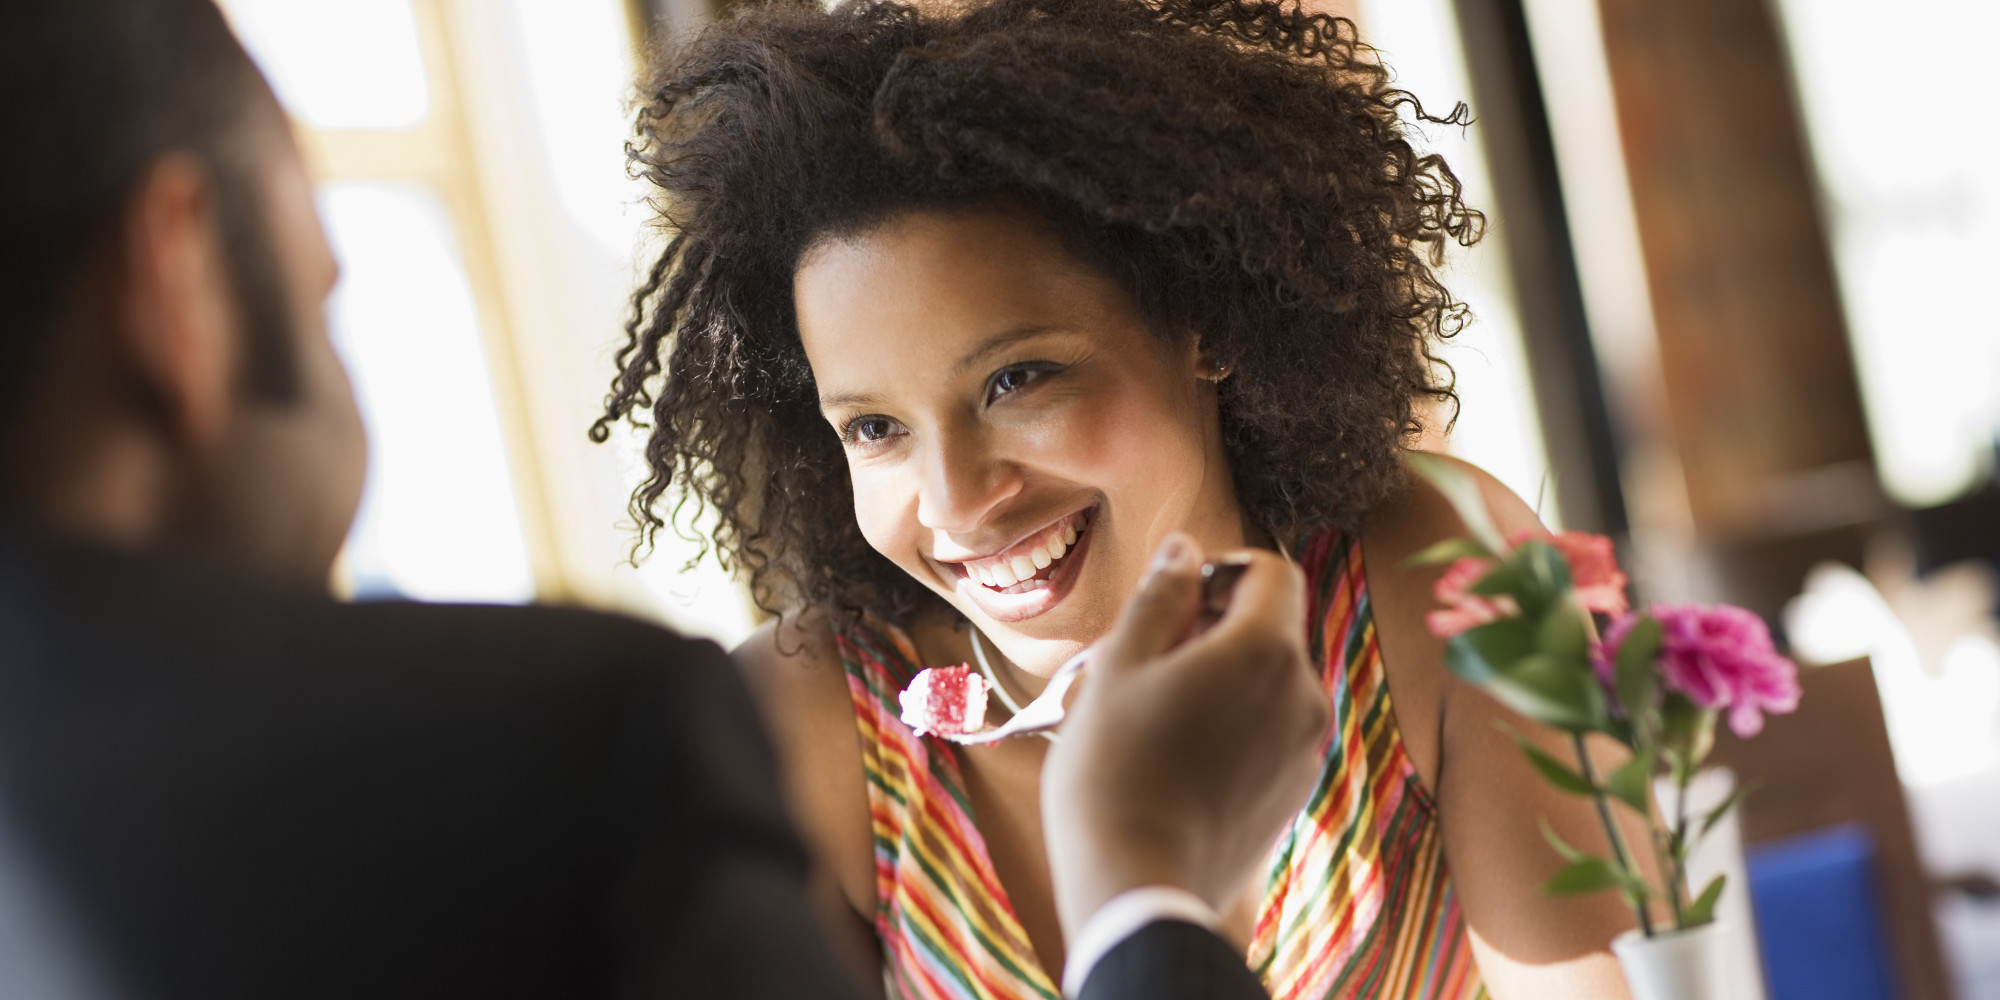 Going out on a date with your first love - 9News Nigeria | Relationship Extra